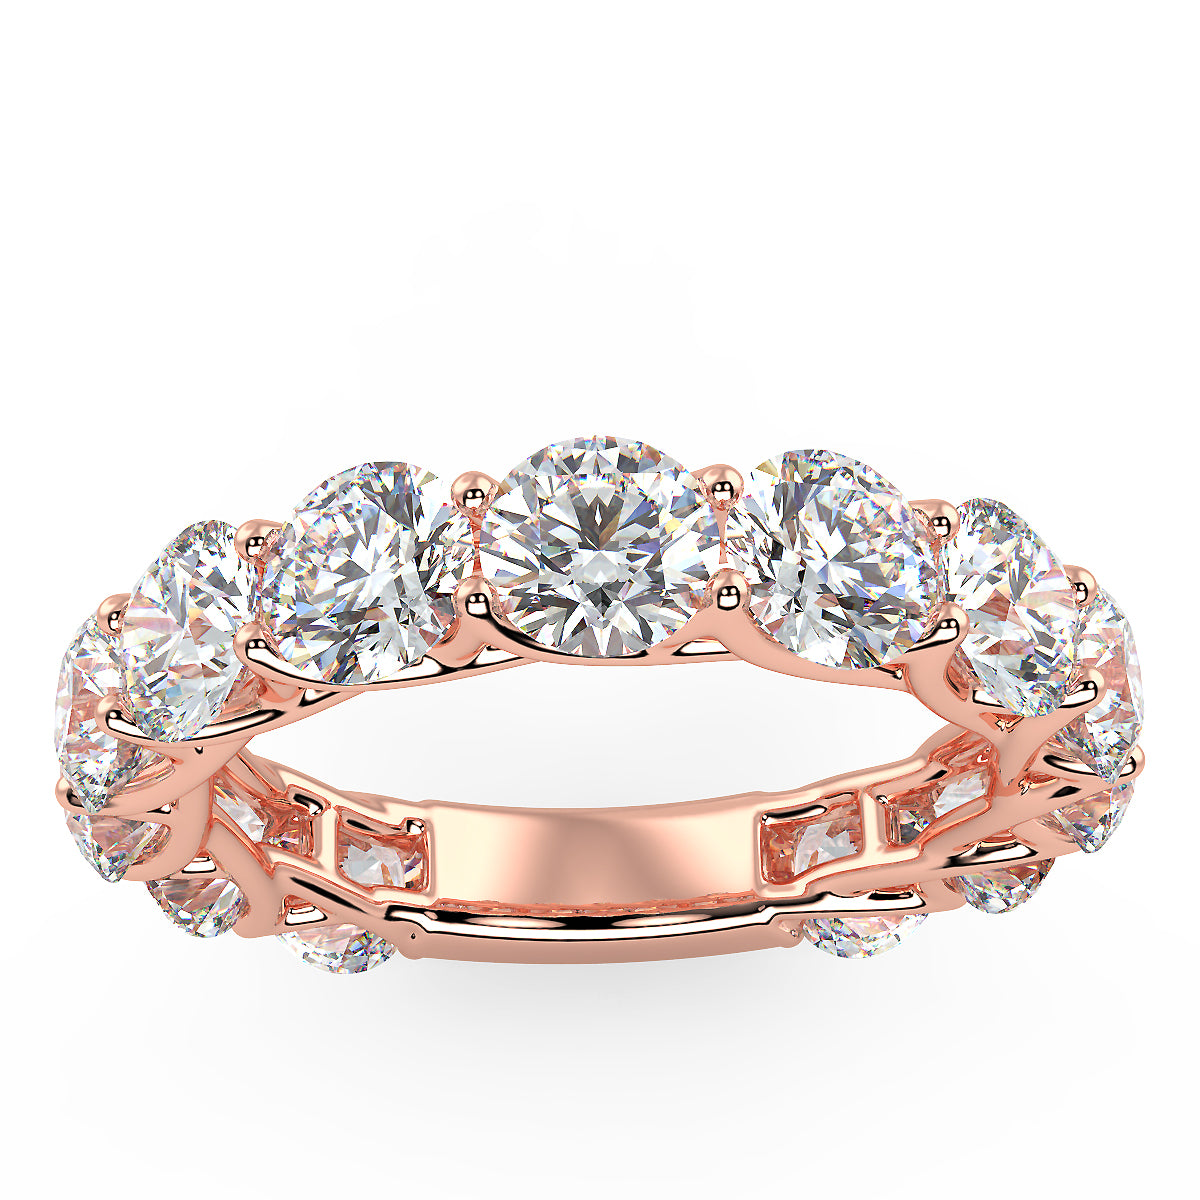 Touch the Stars Ring in Rose Gold (4.16 Ct. Tw.)